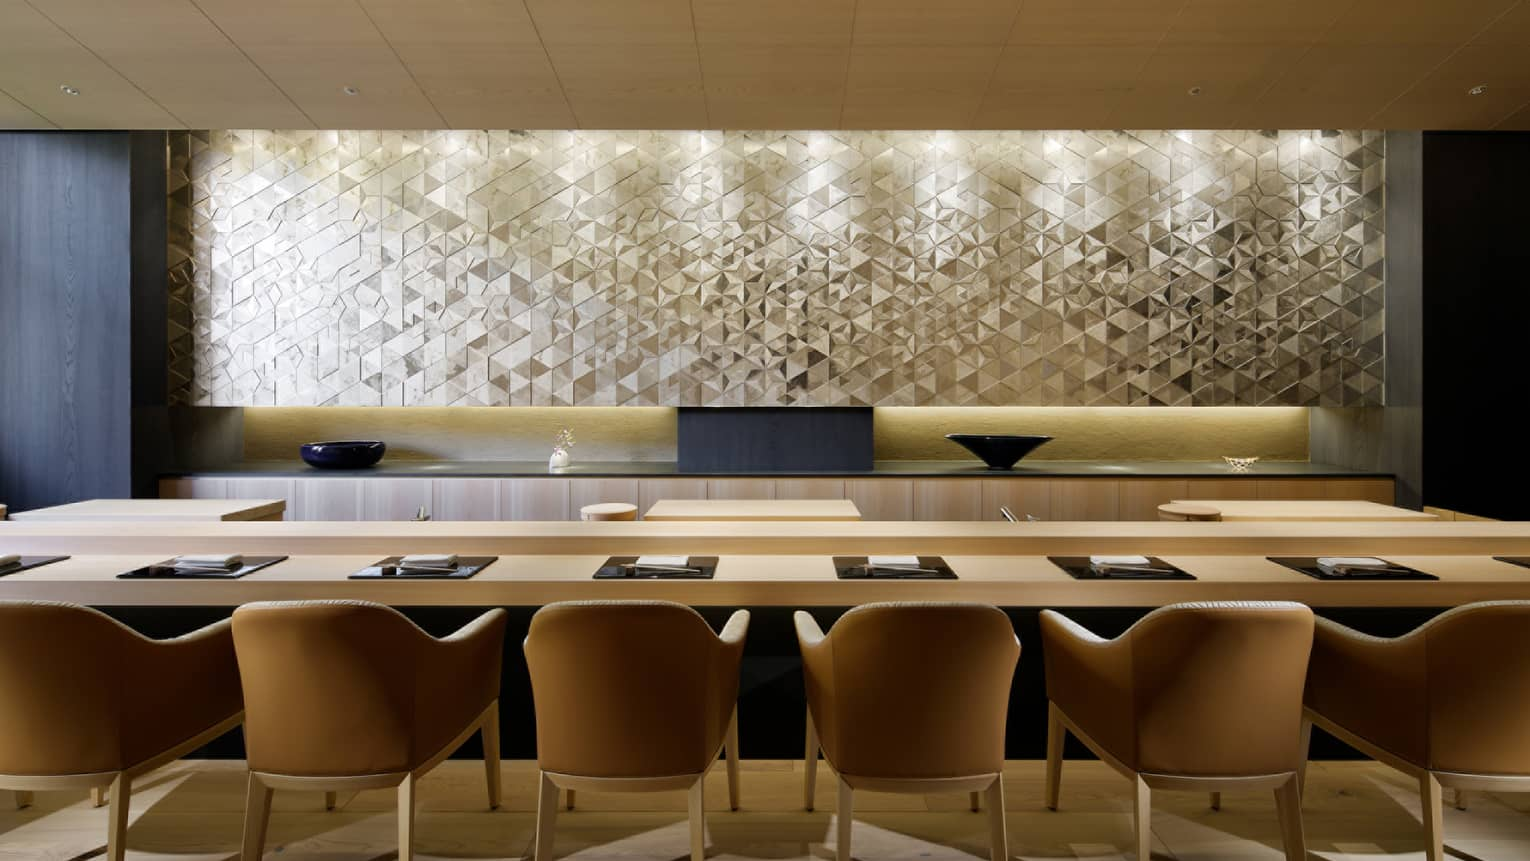 Sushi Wakon large chairs line light wood bar under silver tile wall